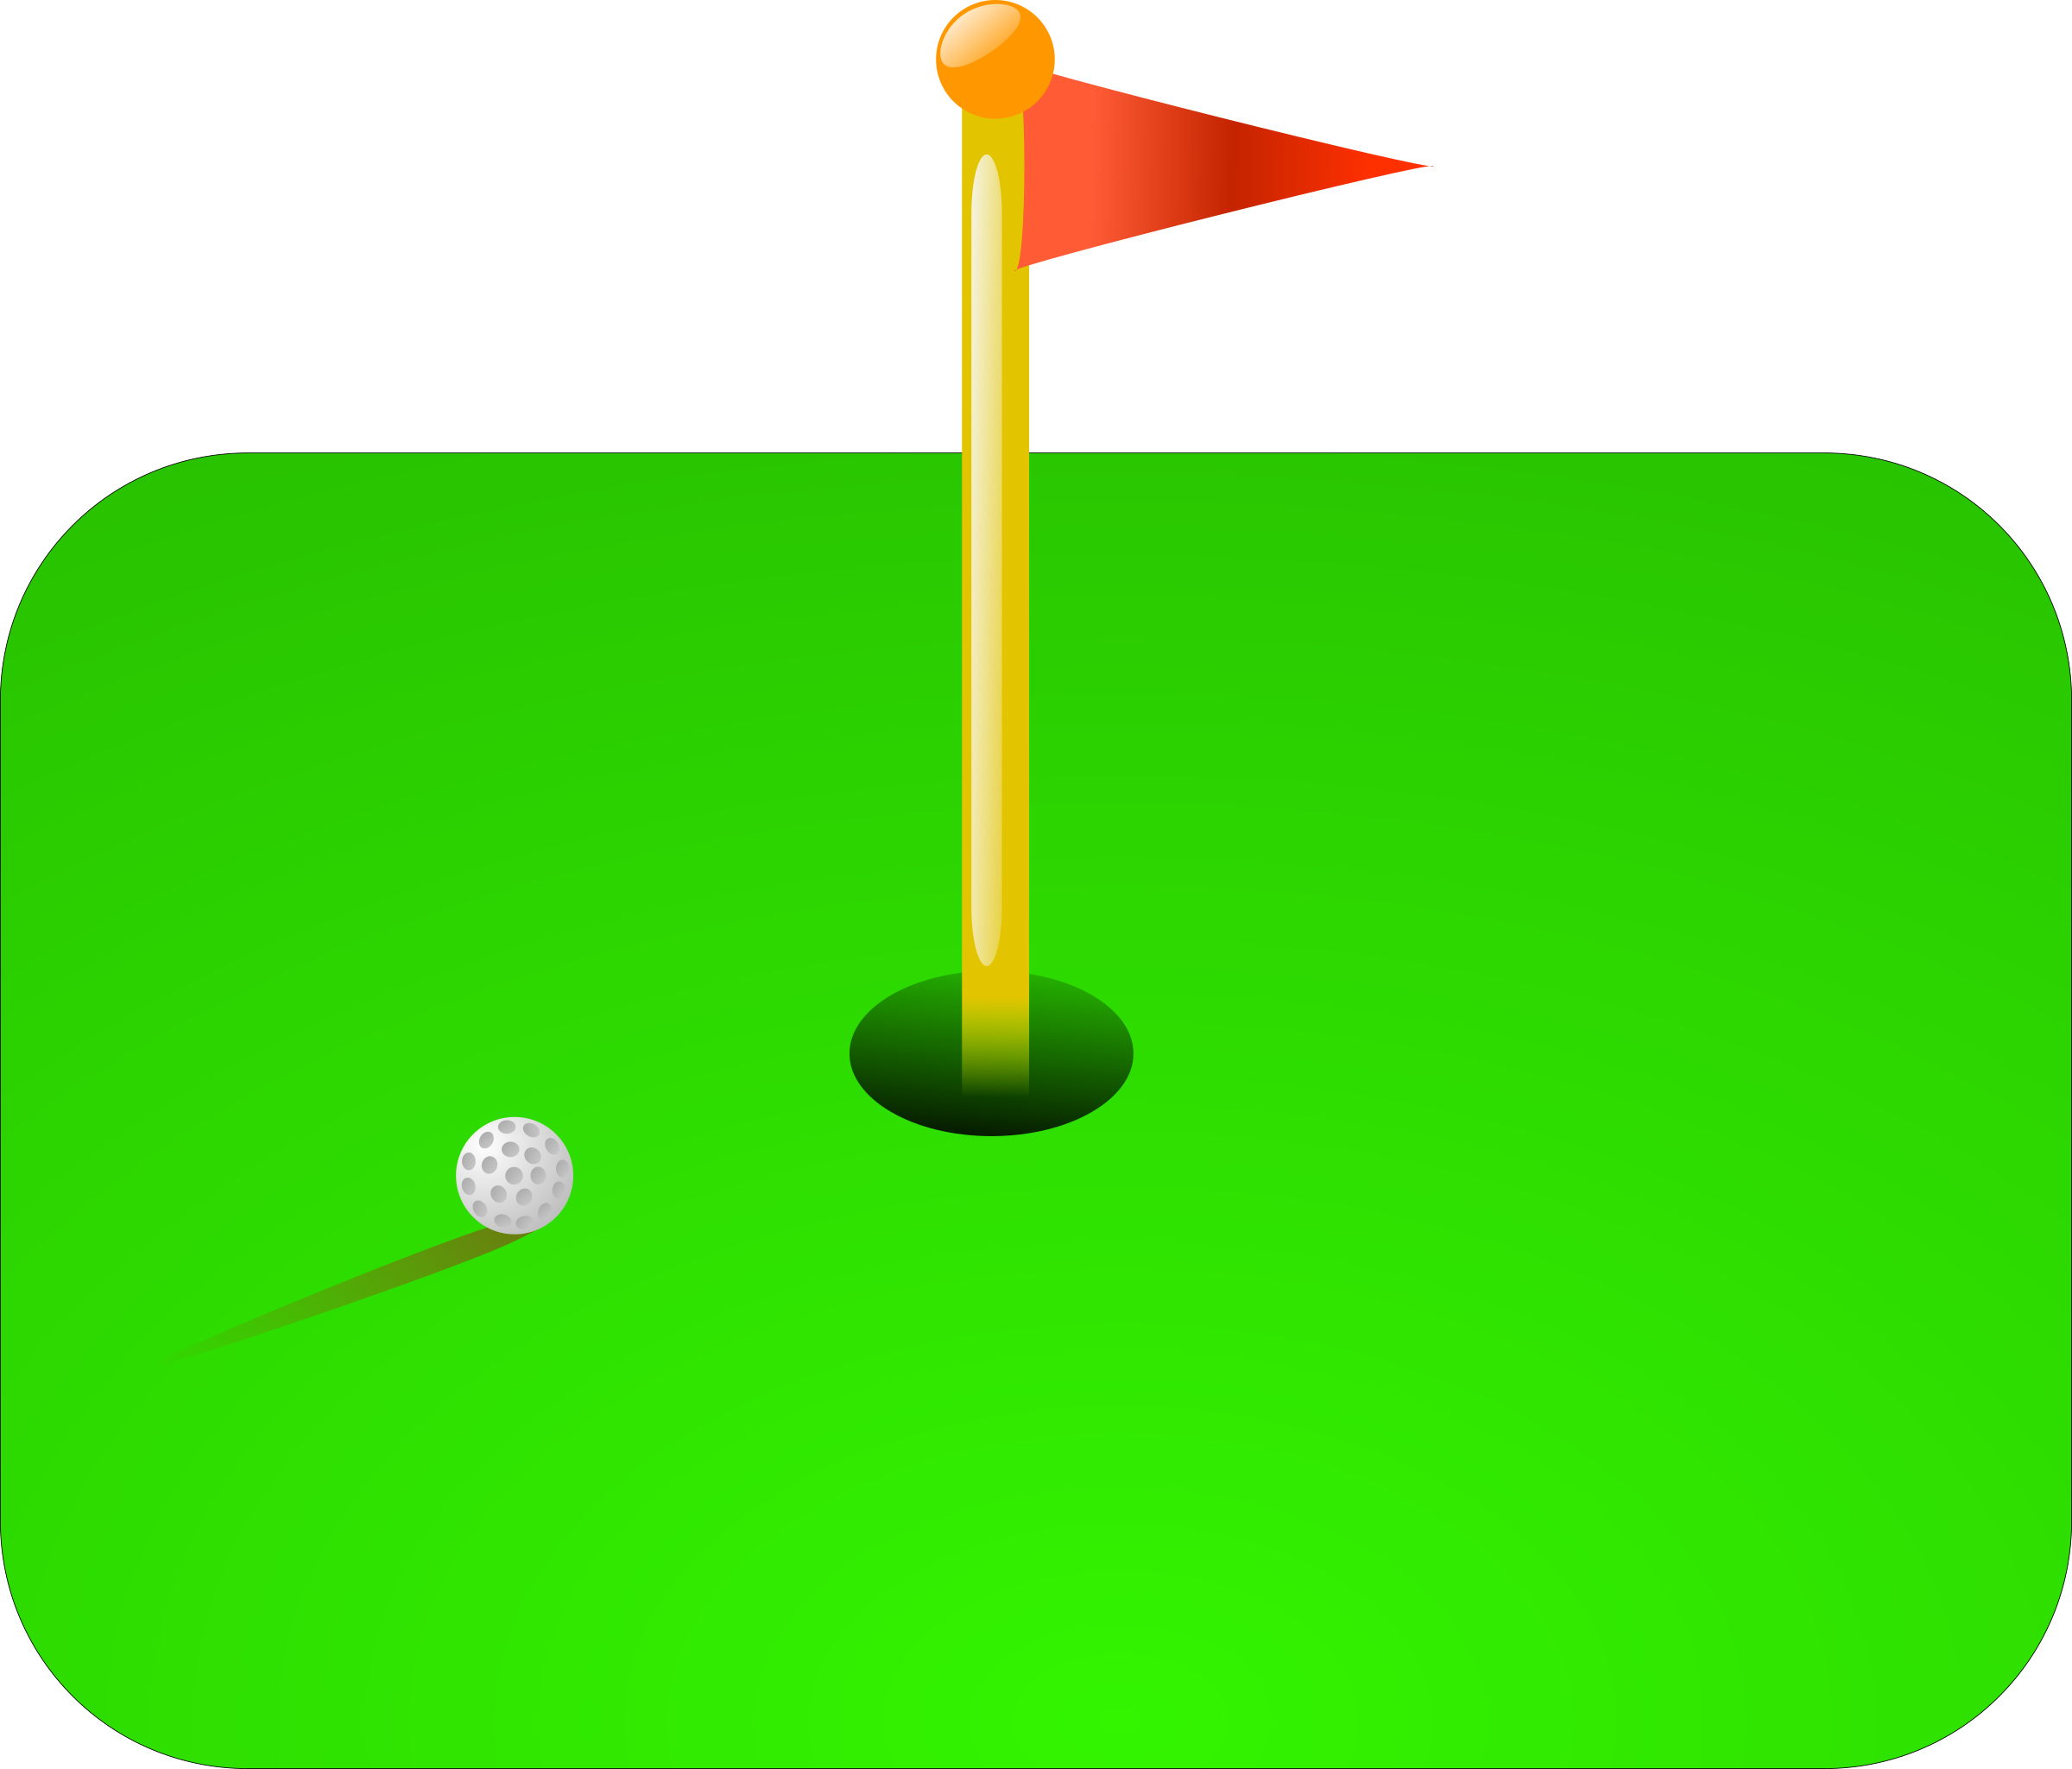 Golf goal clipart png. Flag icons free and